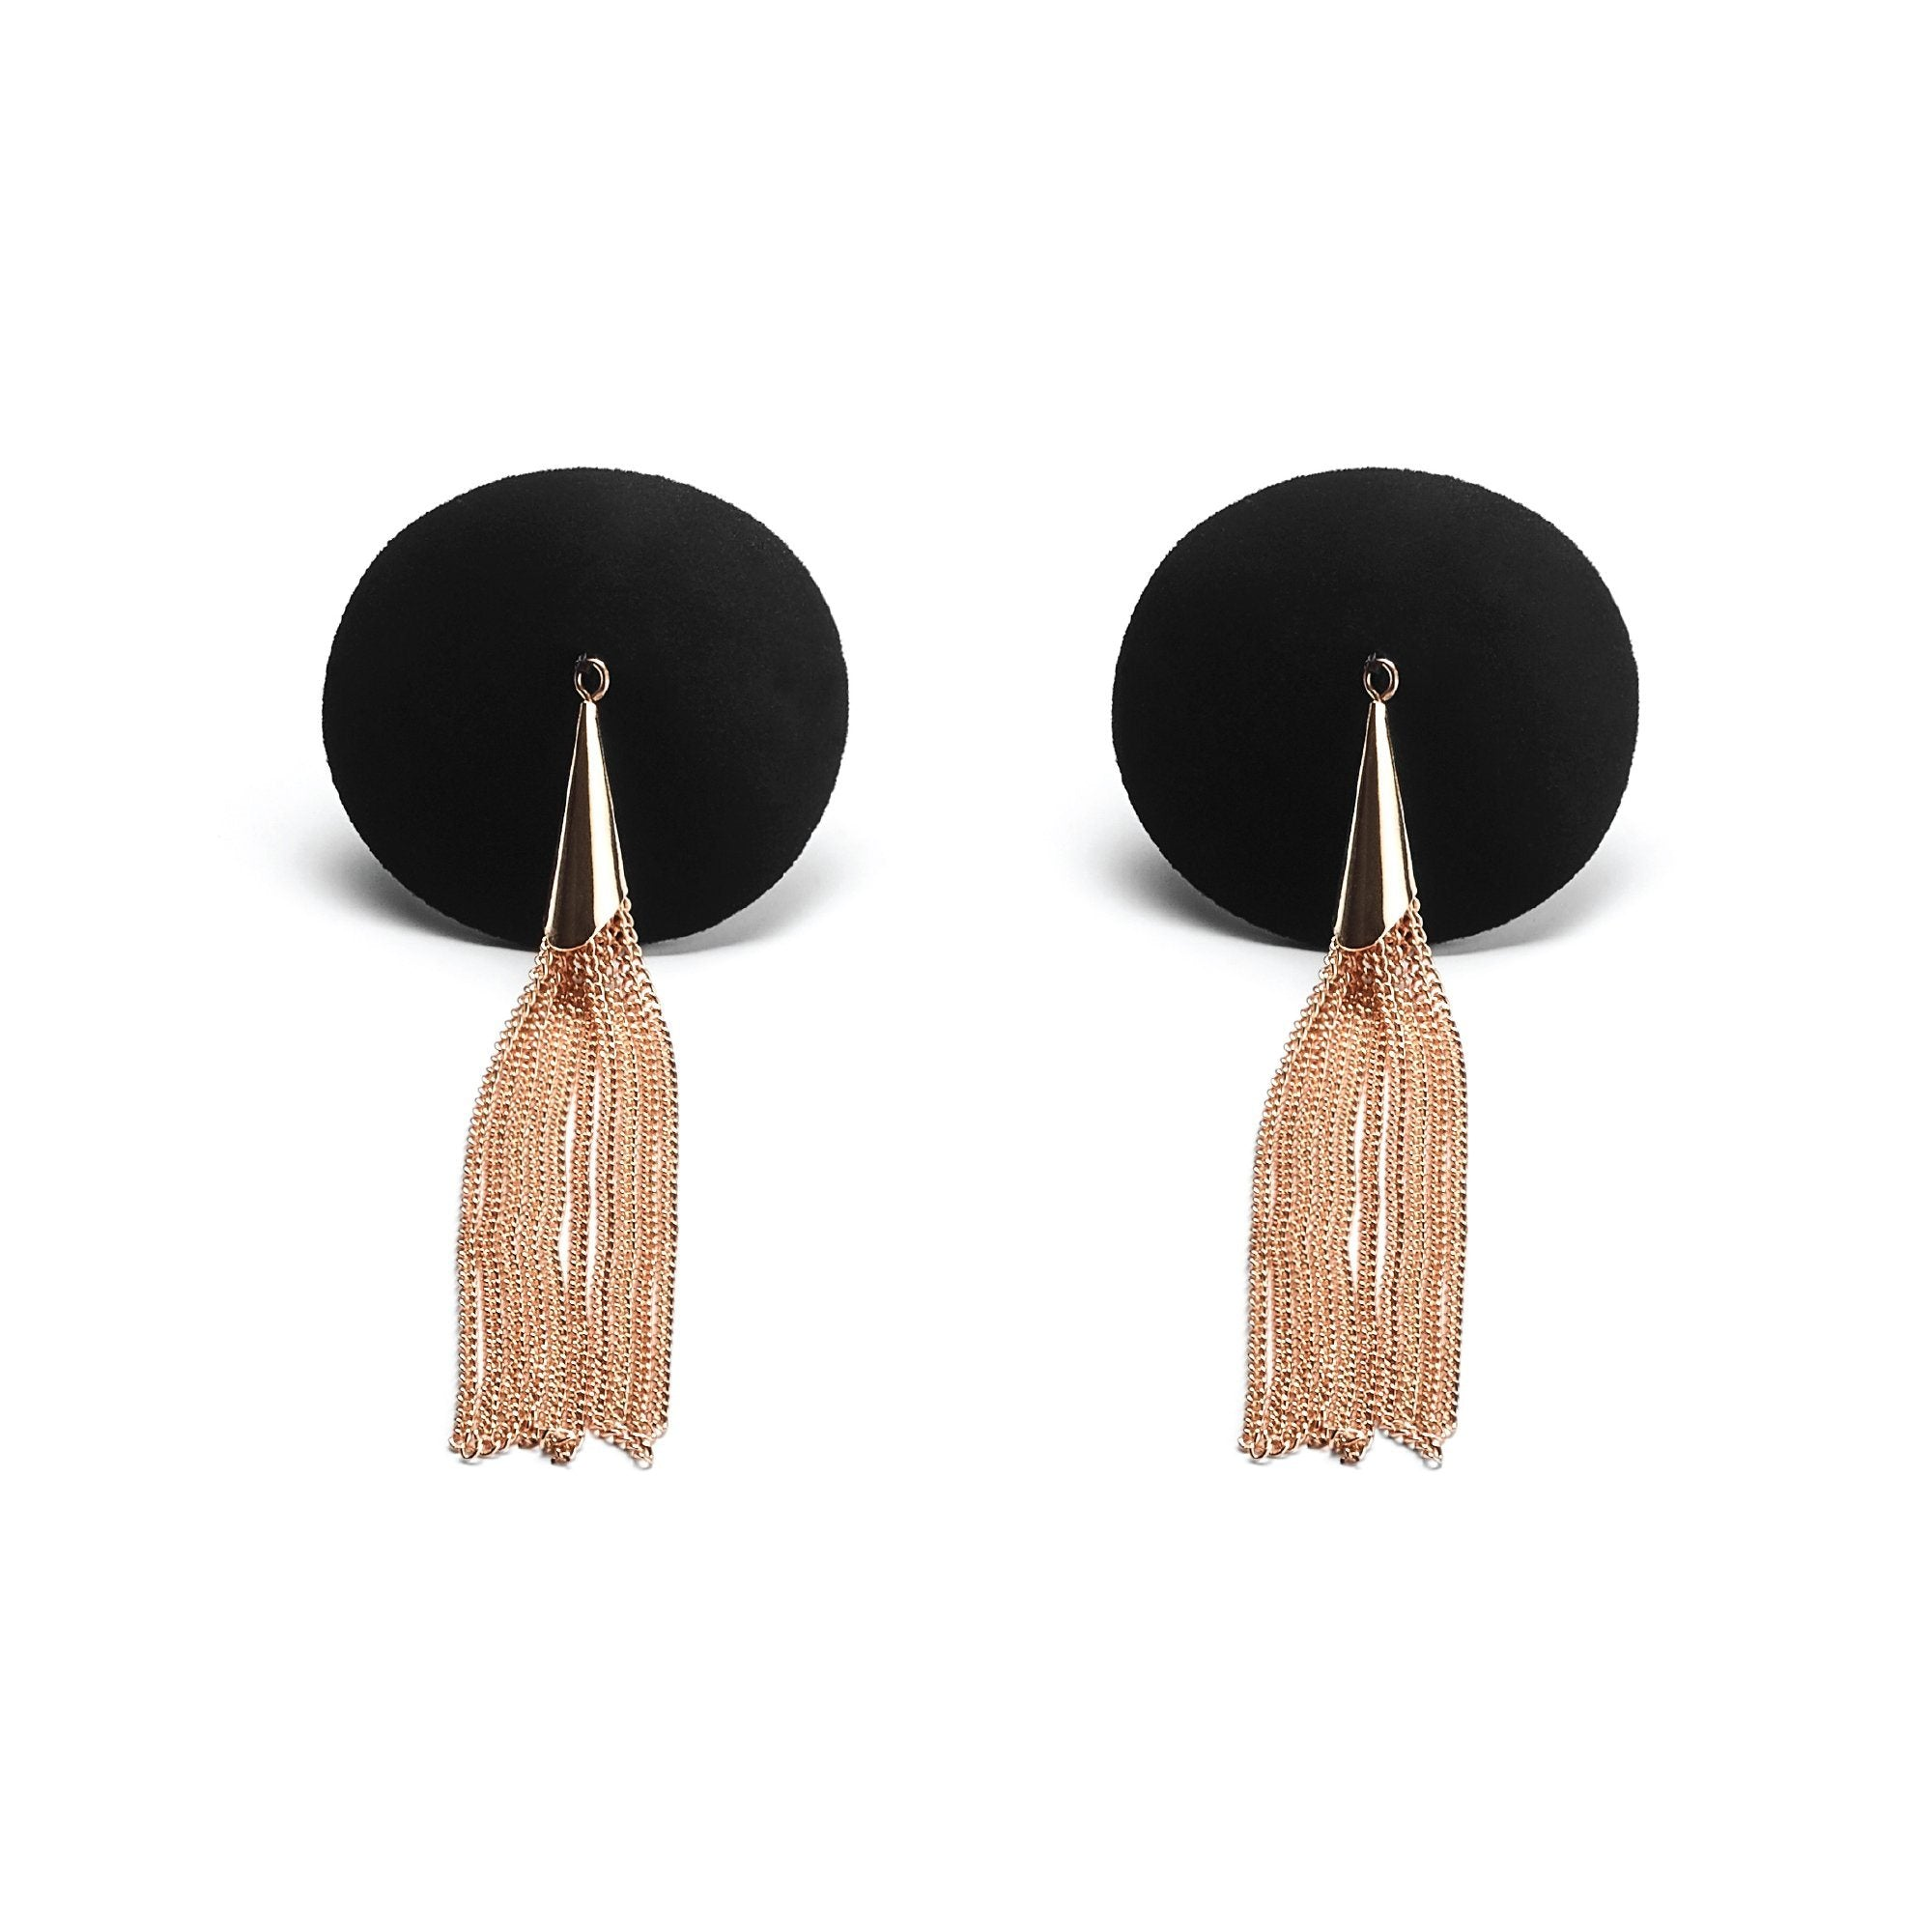 Vinyl Pasties with Rose Gold Tassels at The Cowgirl Shop